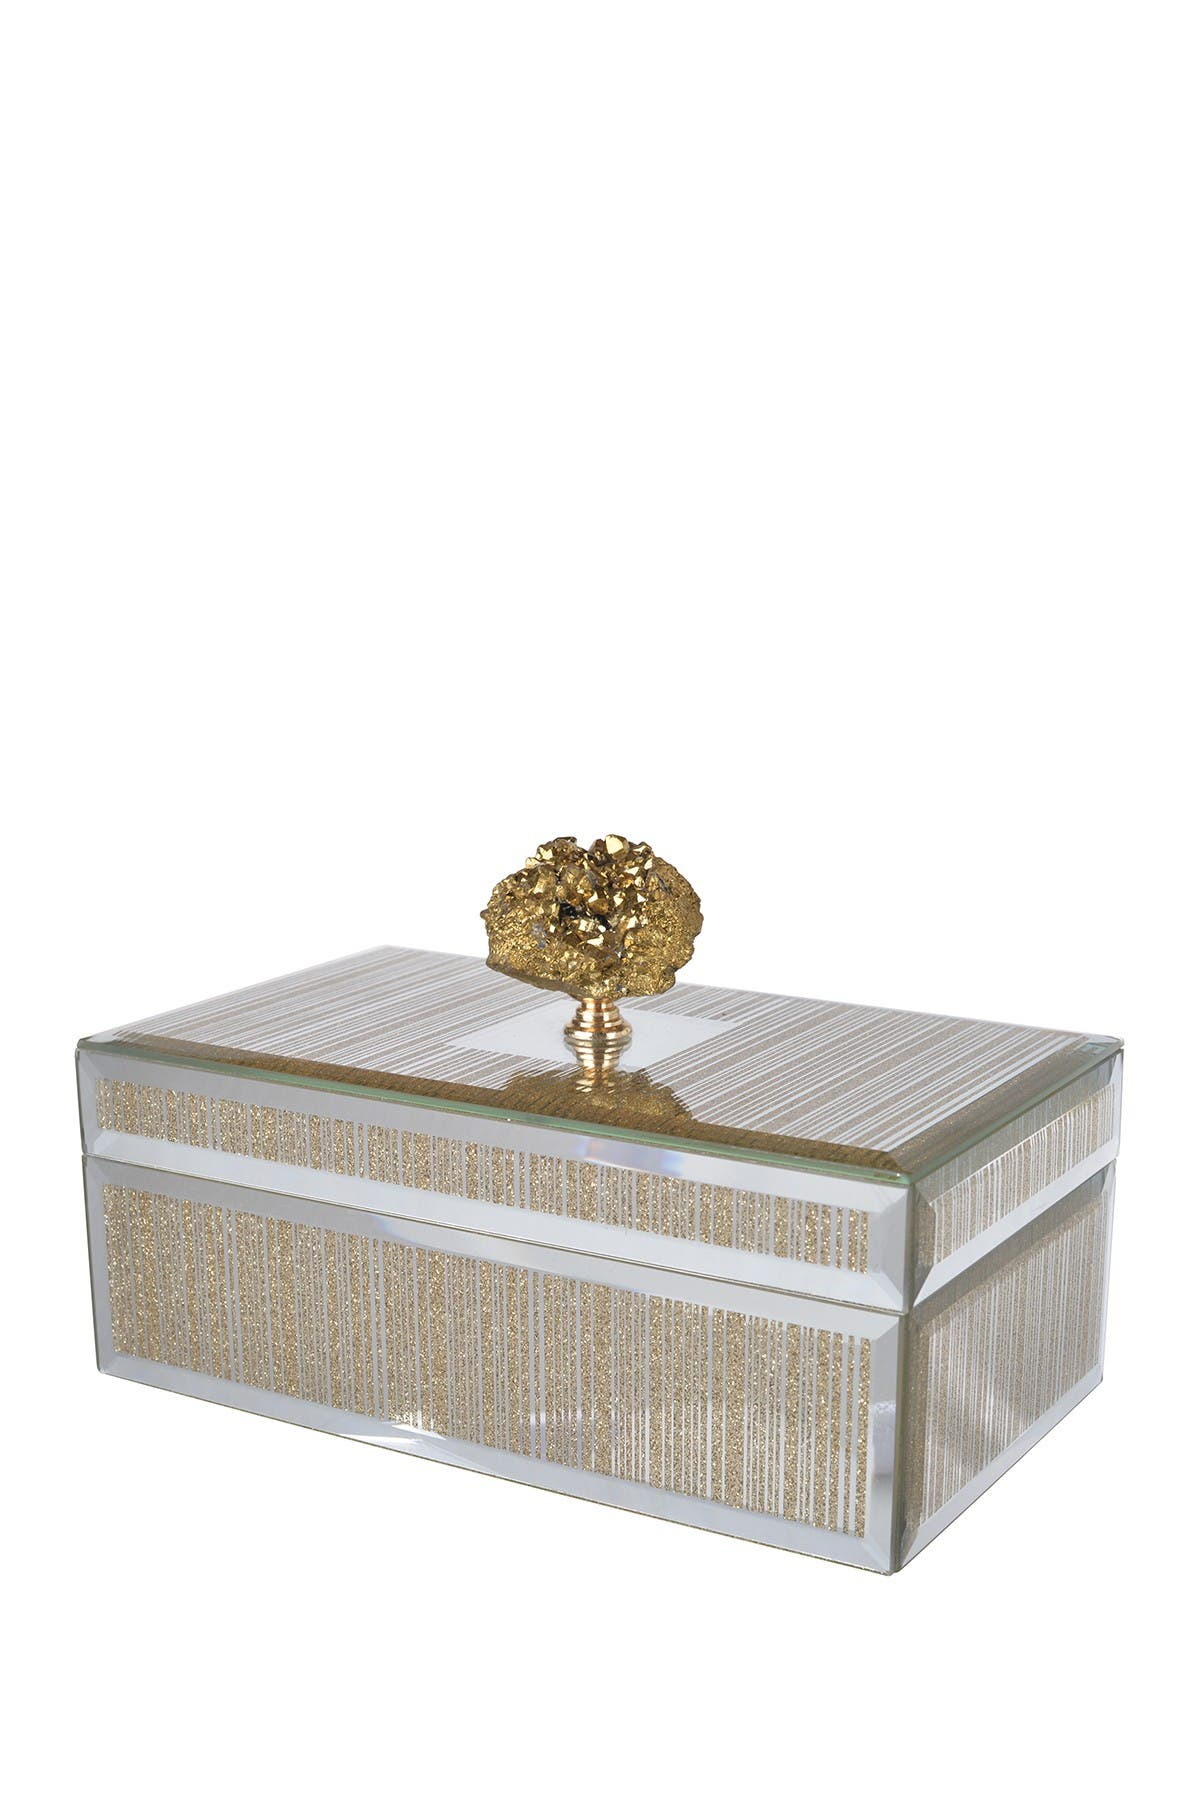 Image of R16 HOME Sullivan Striped Box - Medium